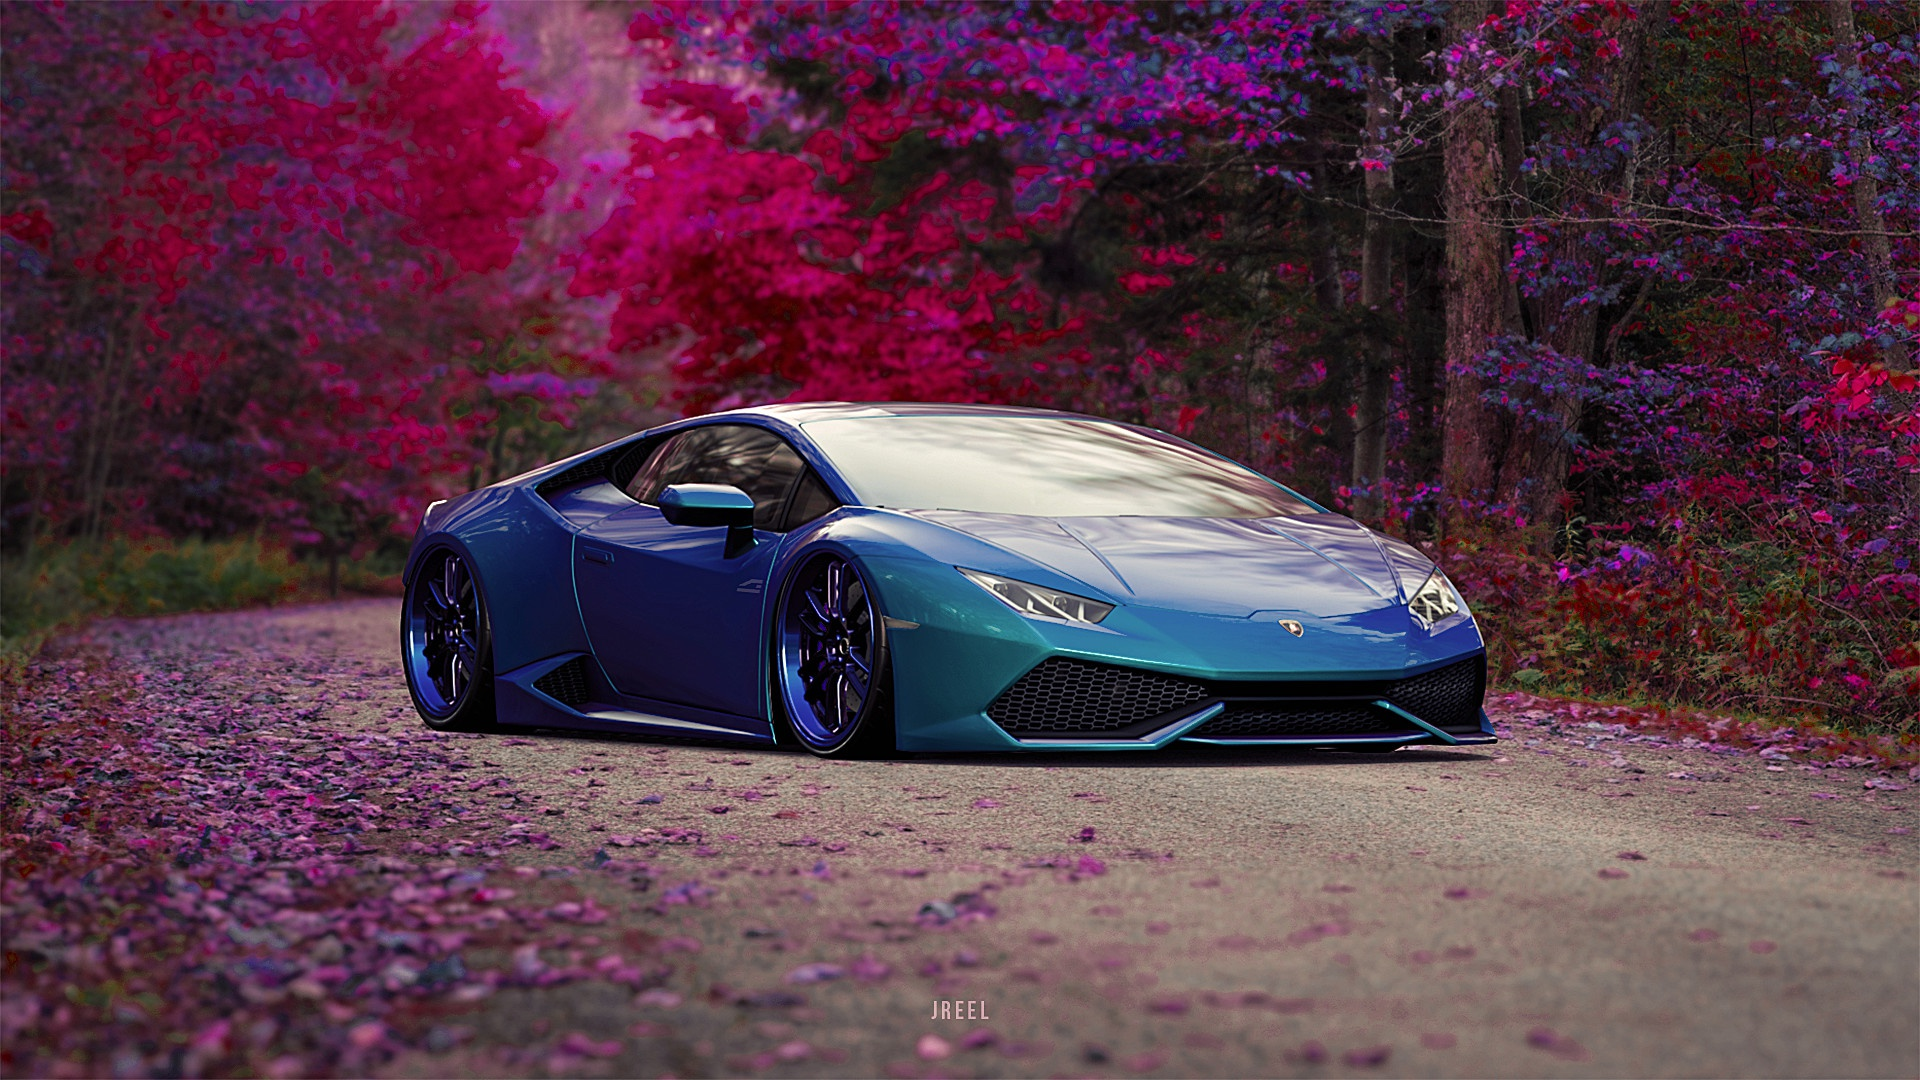 Blue Wallpaper Lamborghini Car 1920x1080 Download Hd Wallpaper Wallpapertip